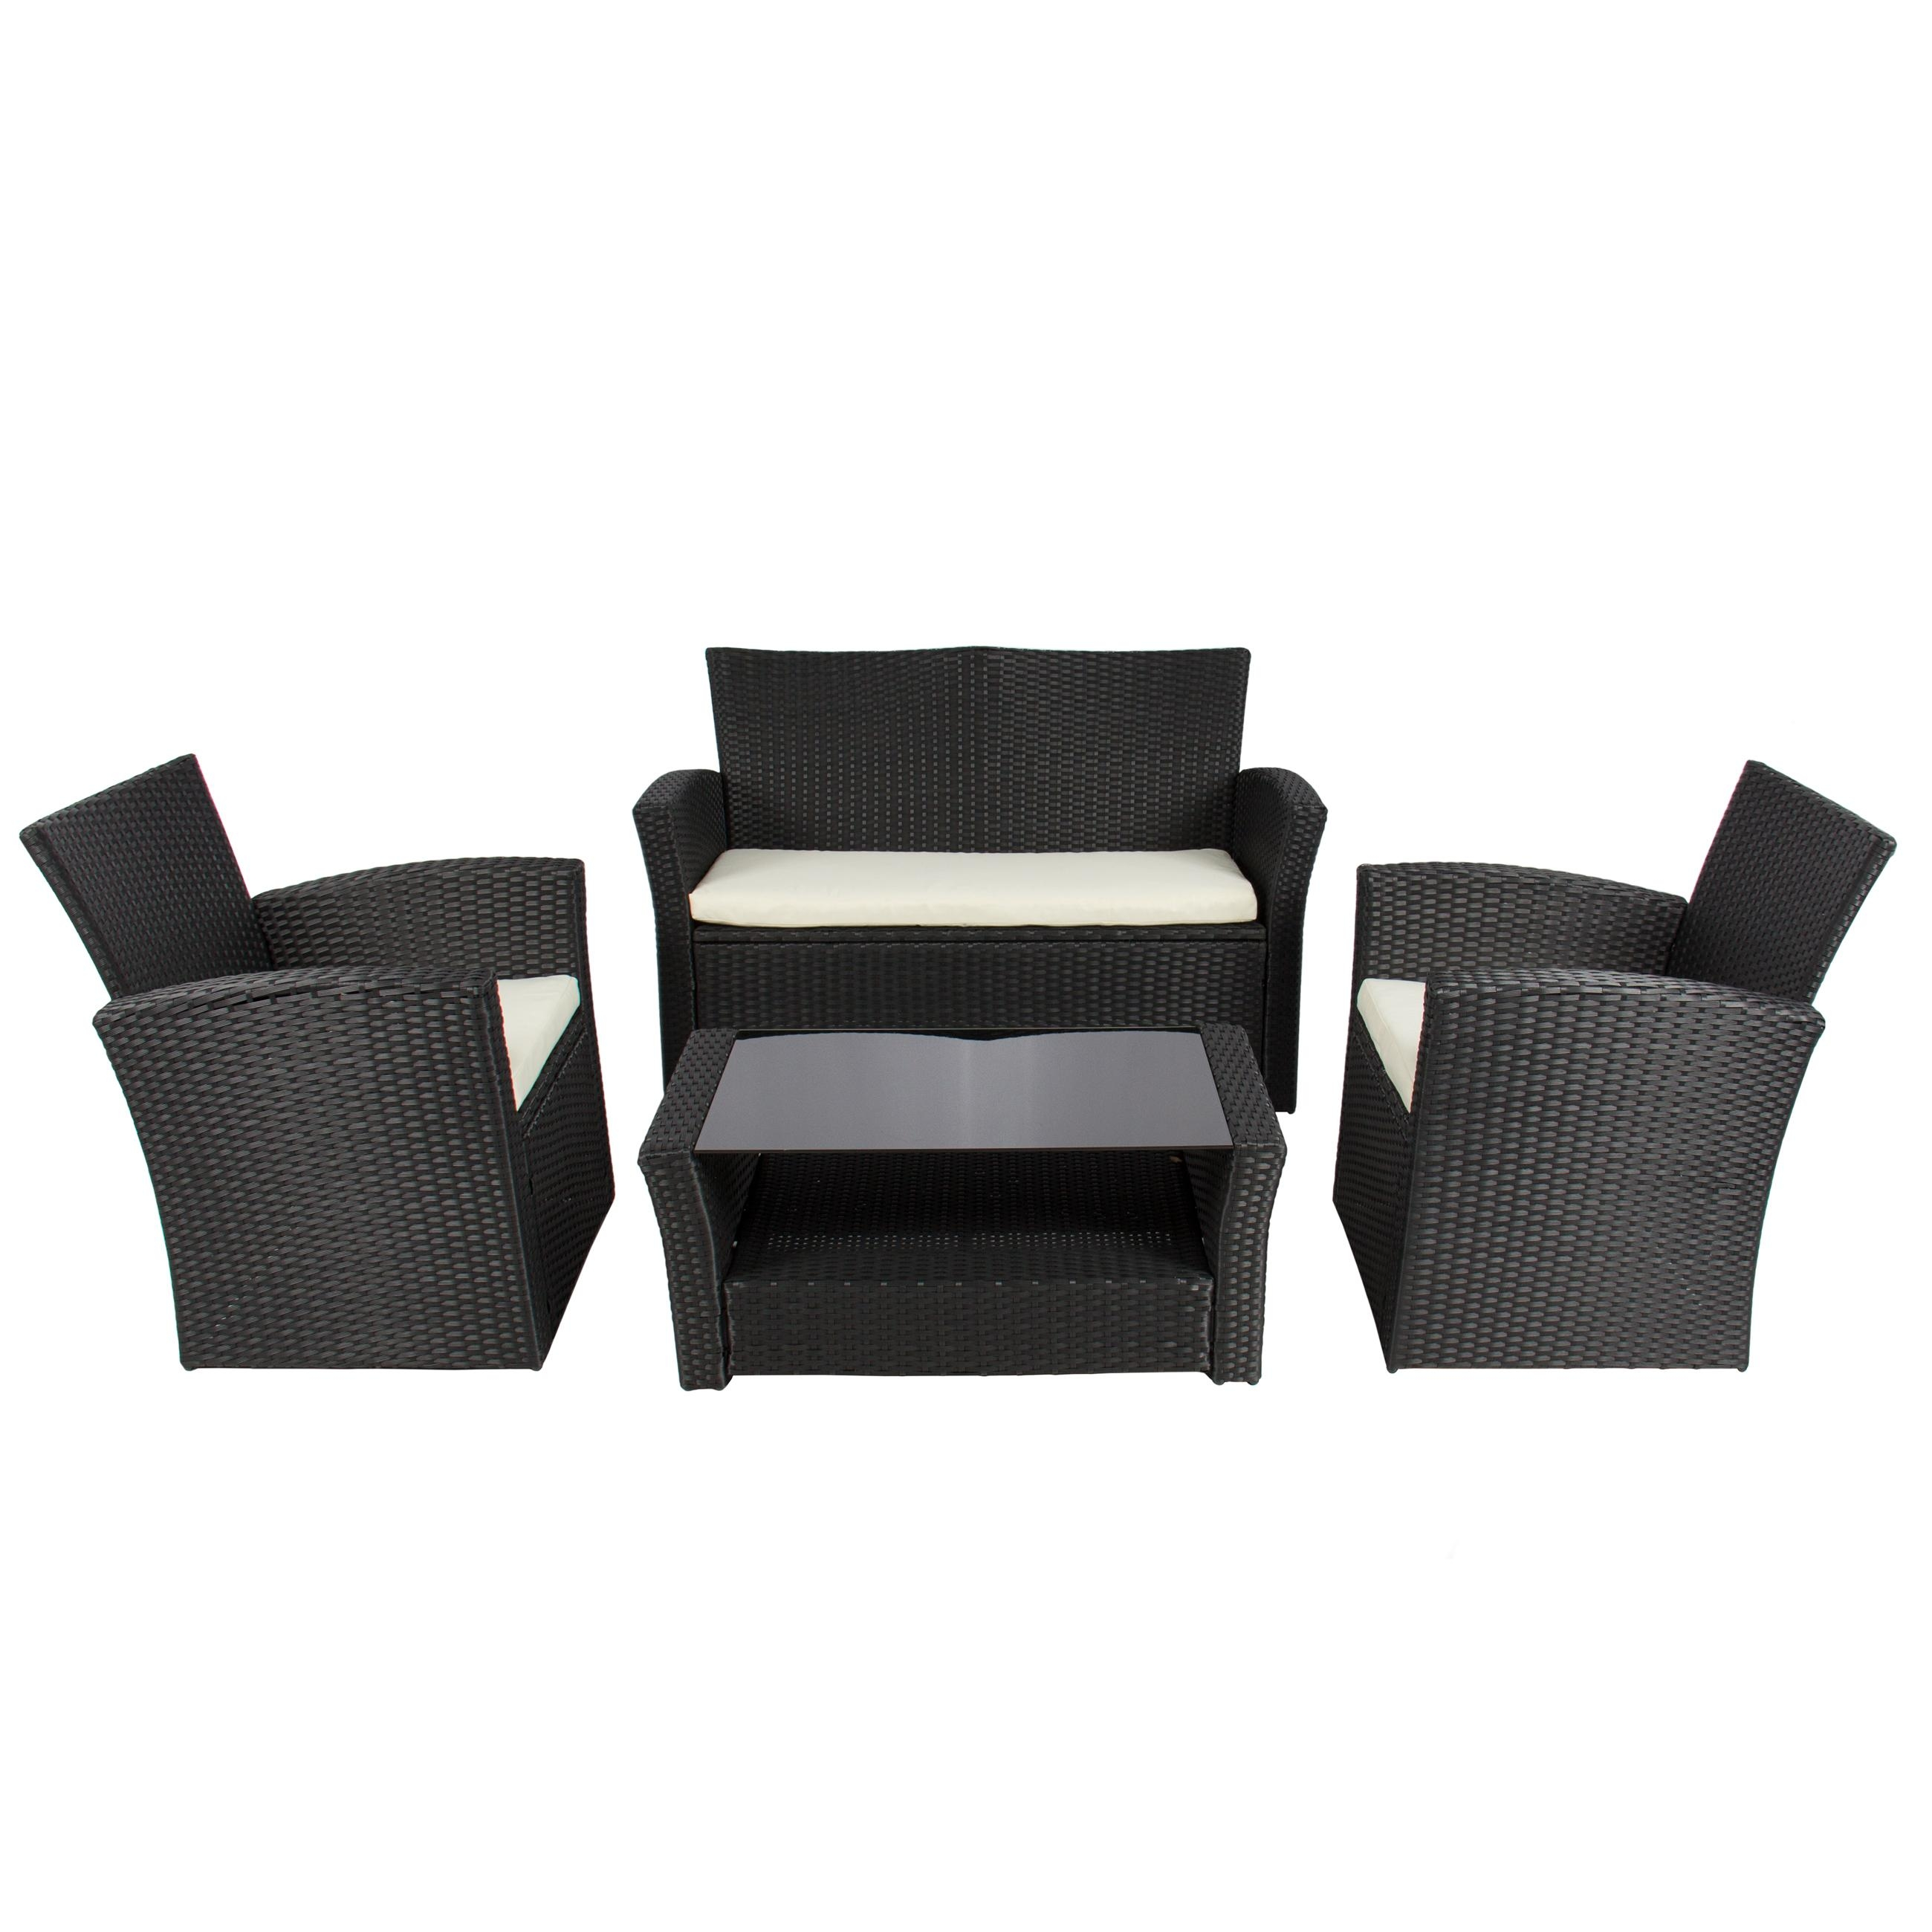 4Pc Outdoor Patio Garden Furniture Wicker Rattan Sofa Set Black Regarding Black Wicker Sofas (View 12 of 20)